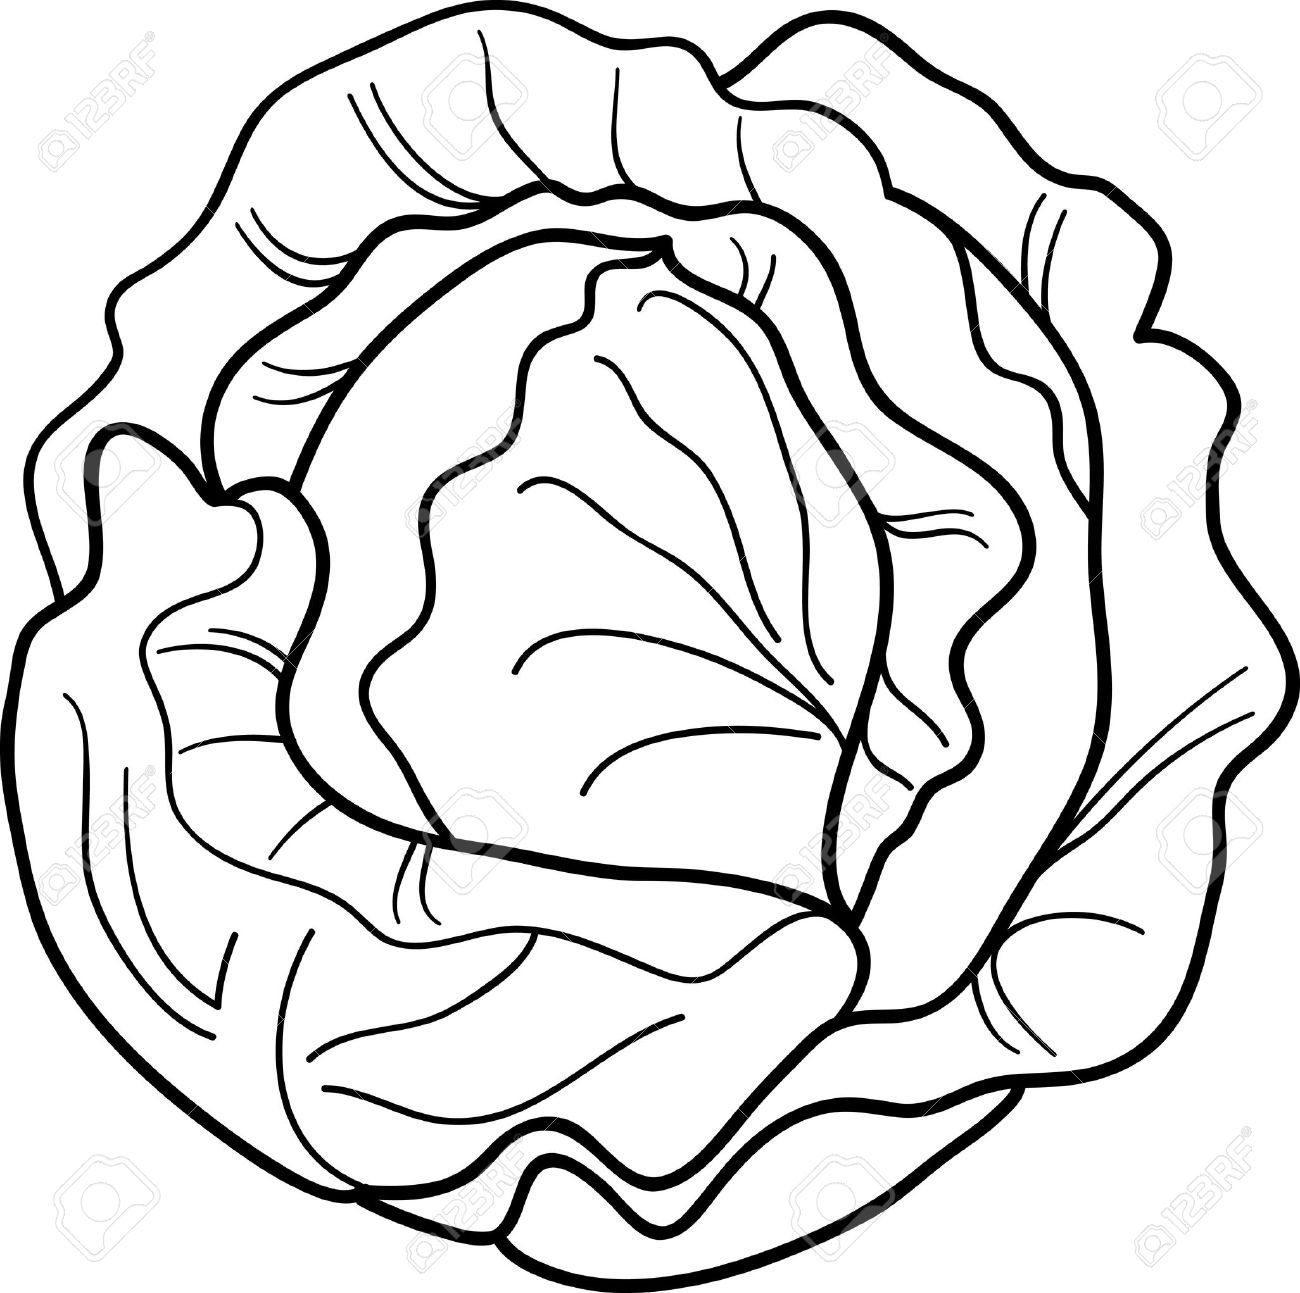 Leaf drawing free download. Lettuce clipart outline